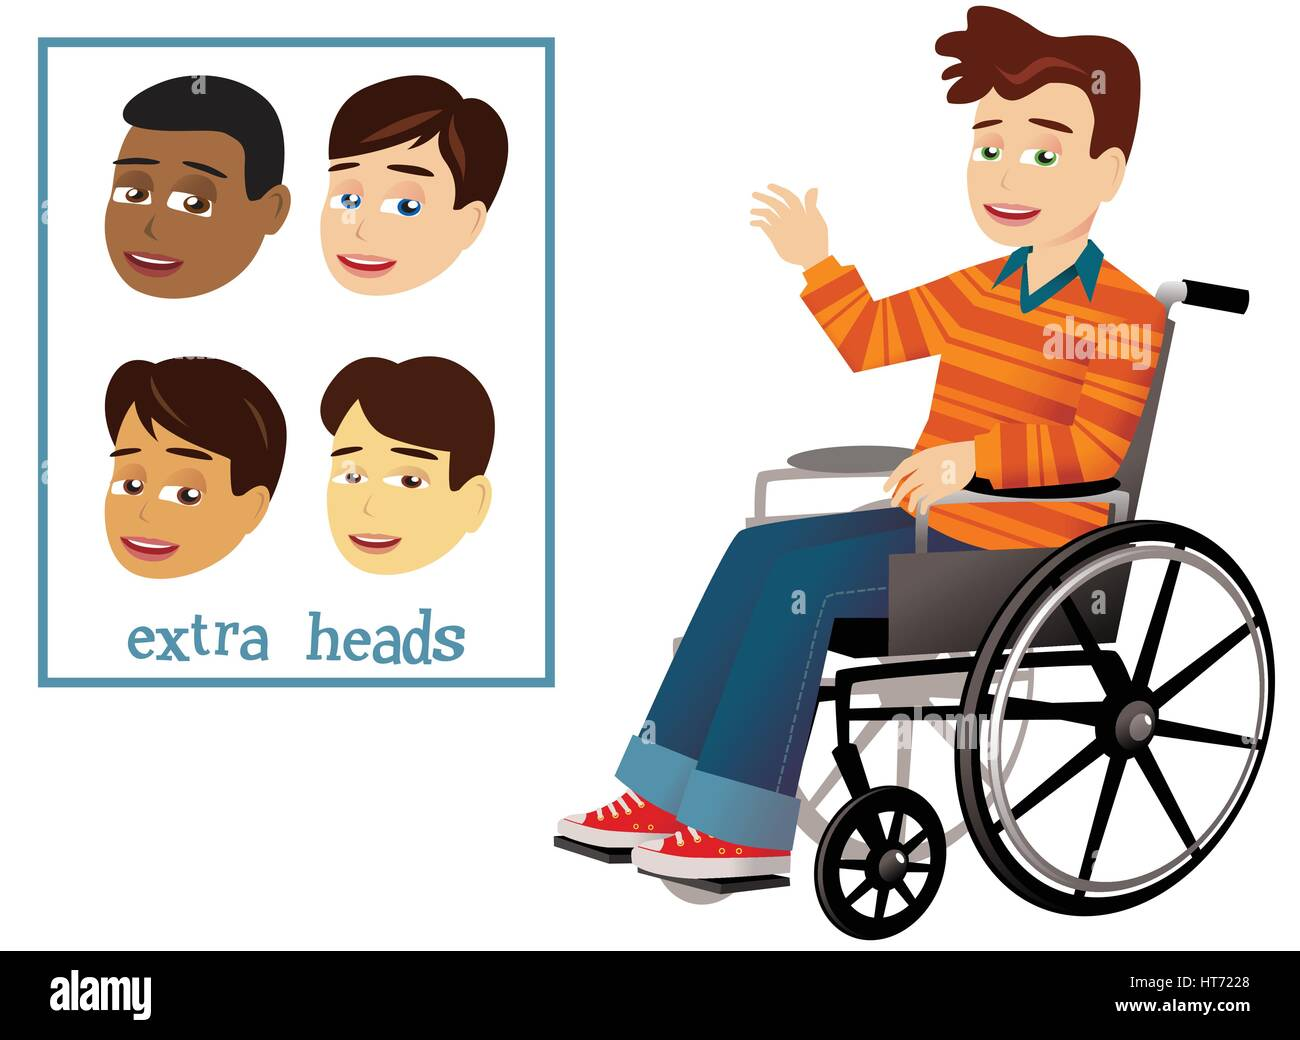 An illustration of a young boy in a wheelchair, plus interchangeable heads for different characters. - Stock Vector